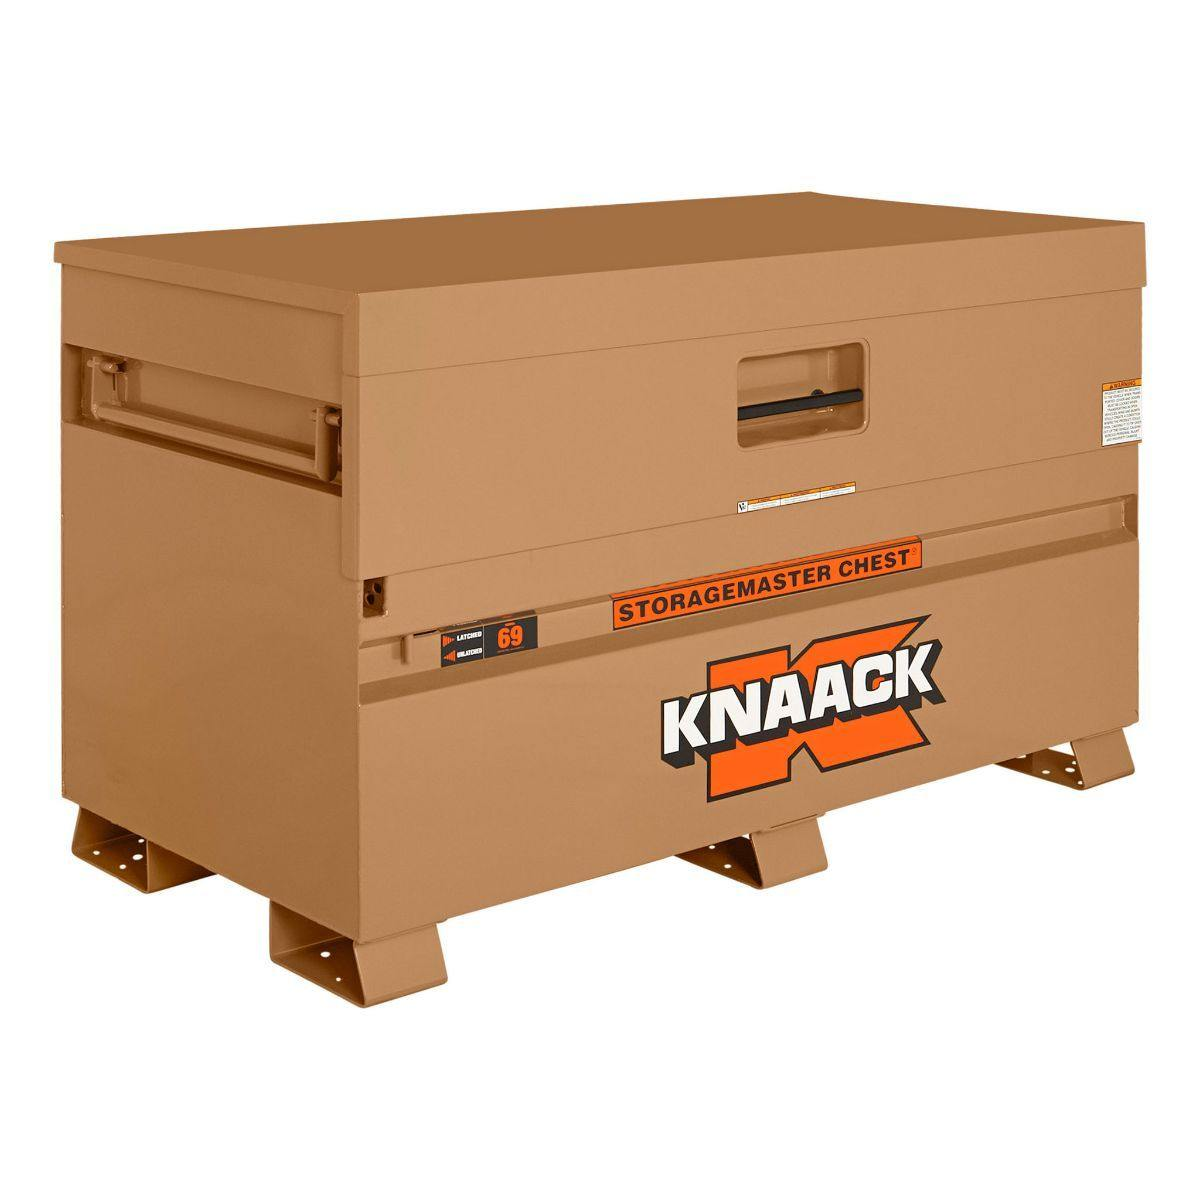 "Knaack 69 StorageMaster 60"" x 30"" x 34"" Piano Style Storage Gang Box Reconditioned"